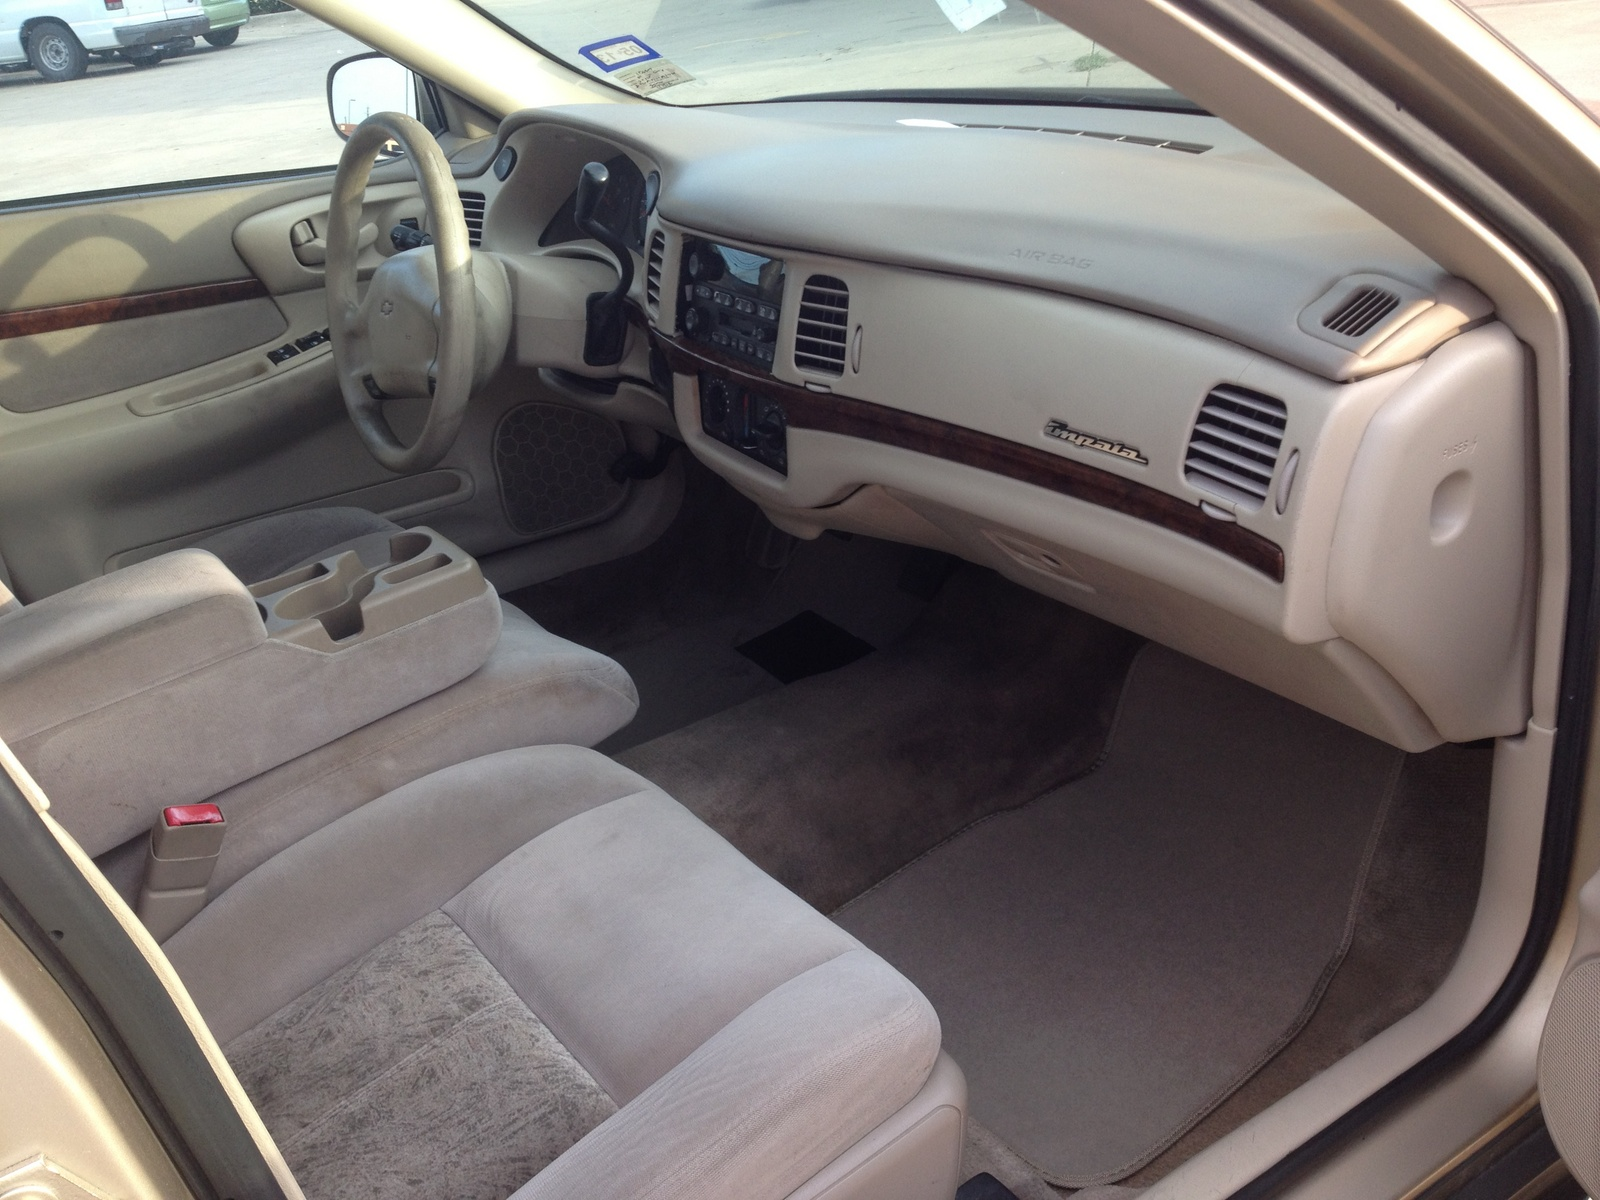 2004 Chevy Impala Dashboard Replacement